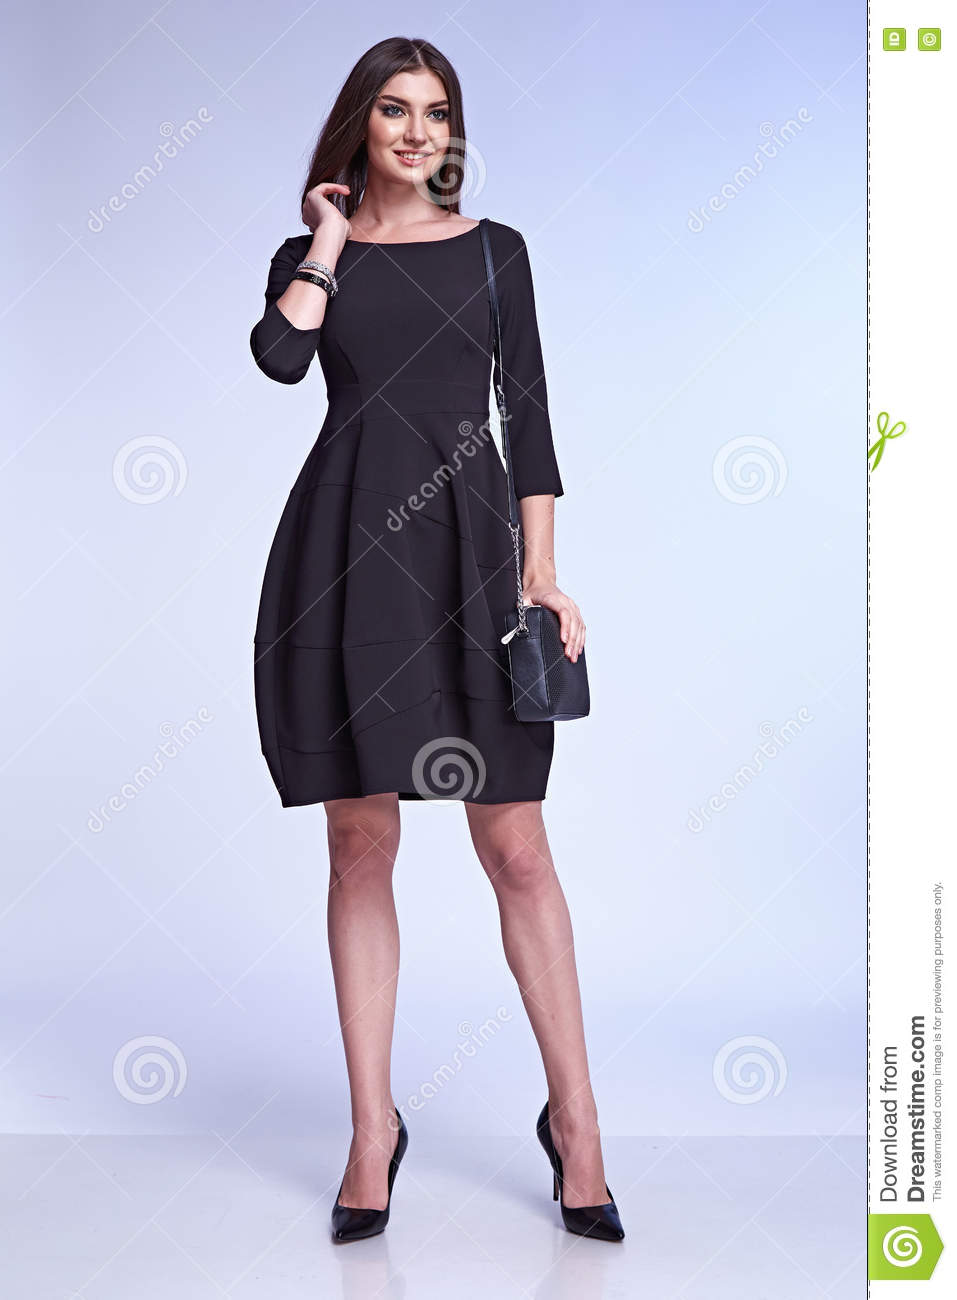 A Guide to Women's Dress Codes for All Occasions - The ...